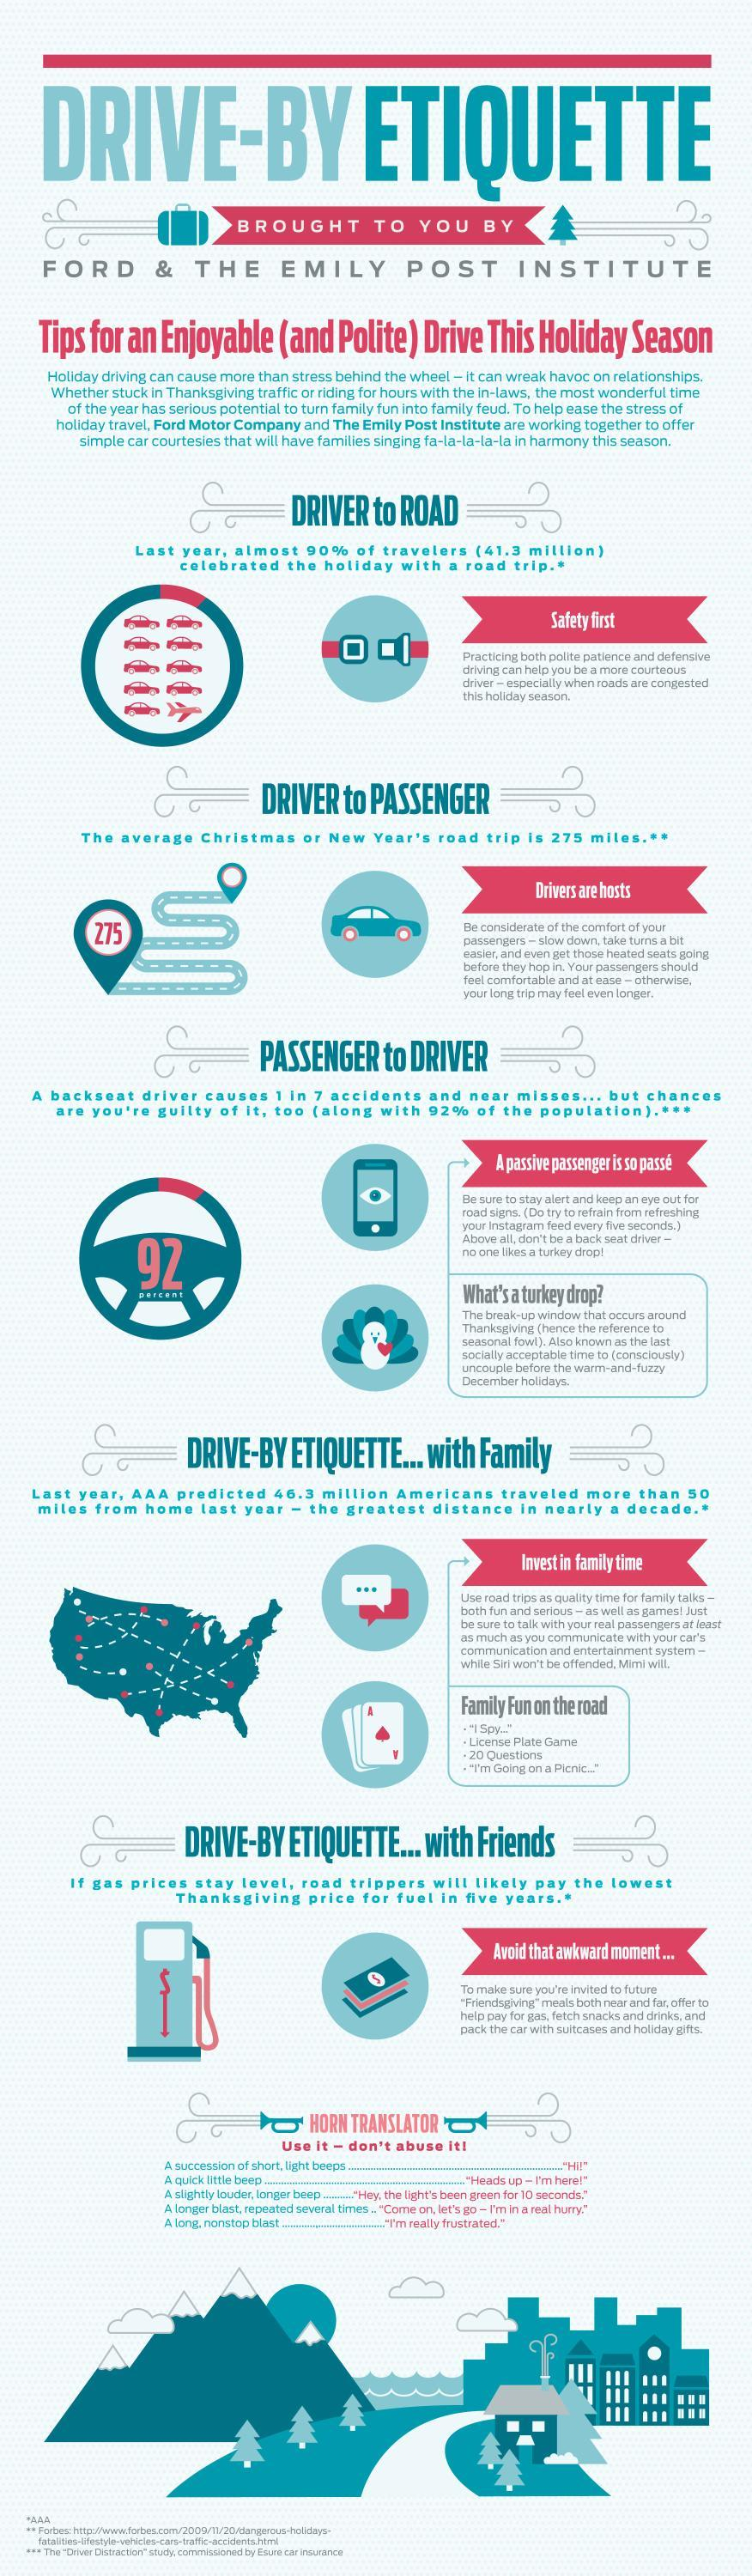 Holiday Travel Etiquette And Safety Tips